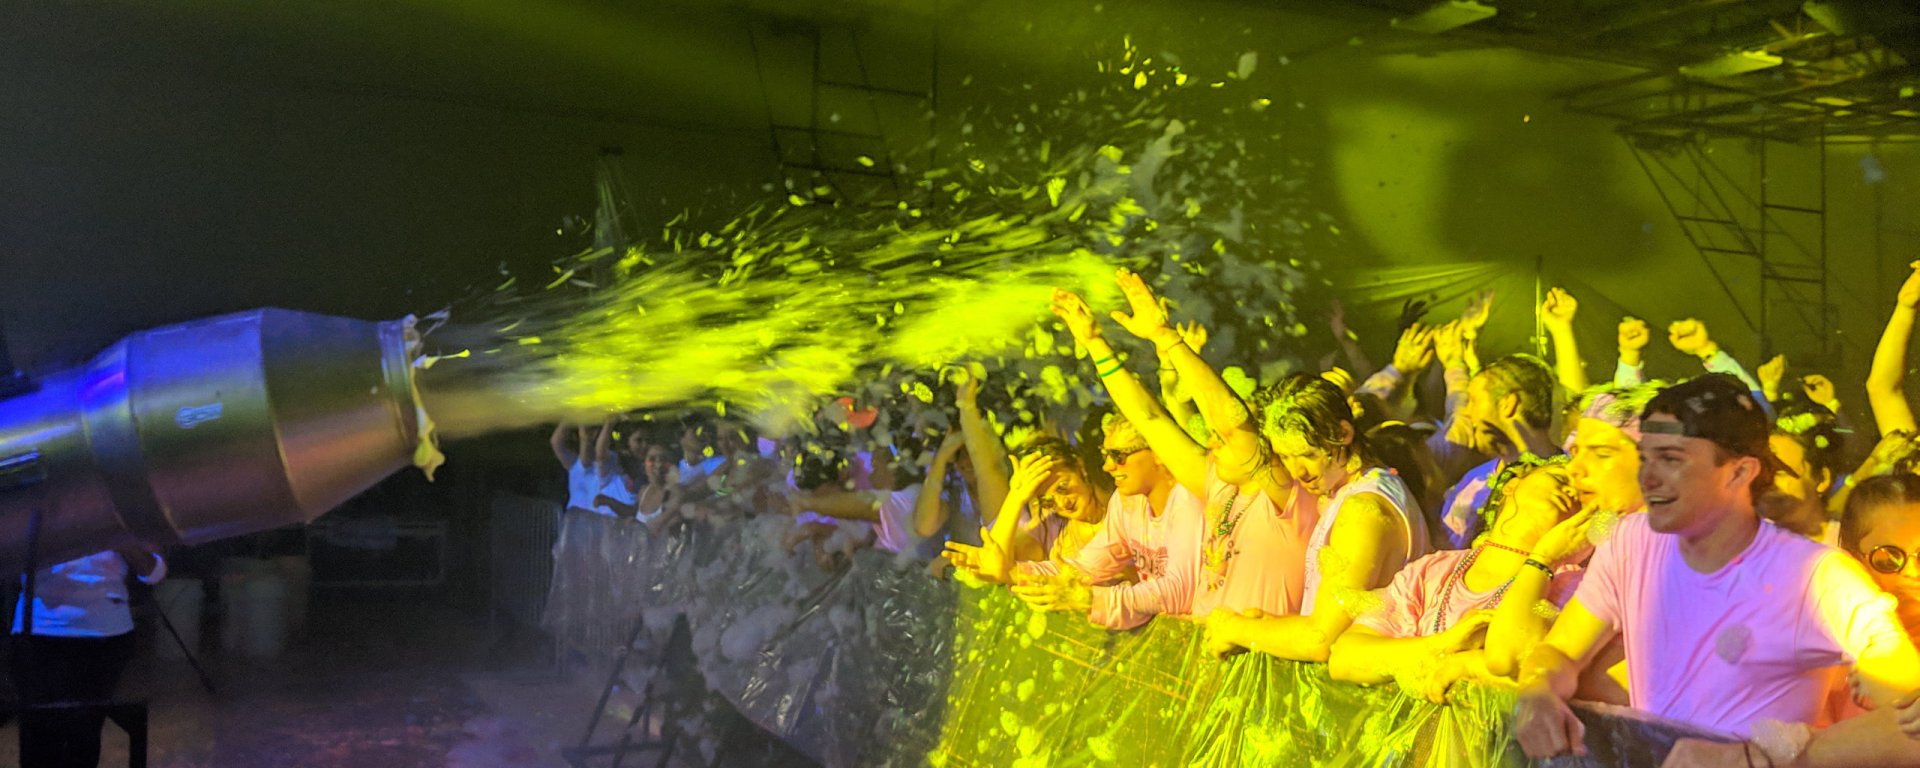 Hastings College students are having a great time at Operation Glow while getting sprayed with foam, a new addition for the 2019 Operation Glow.